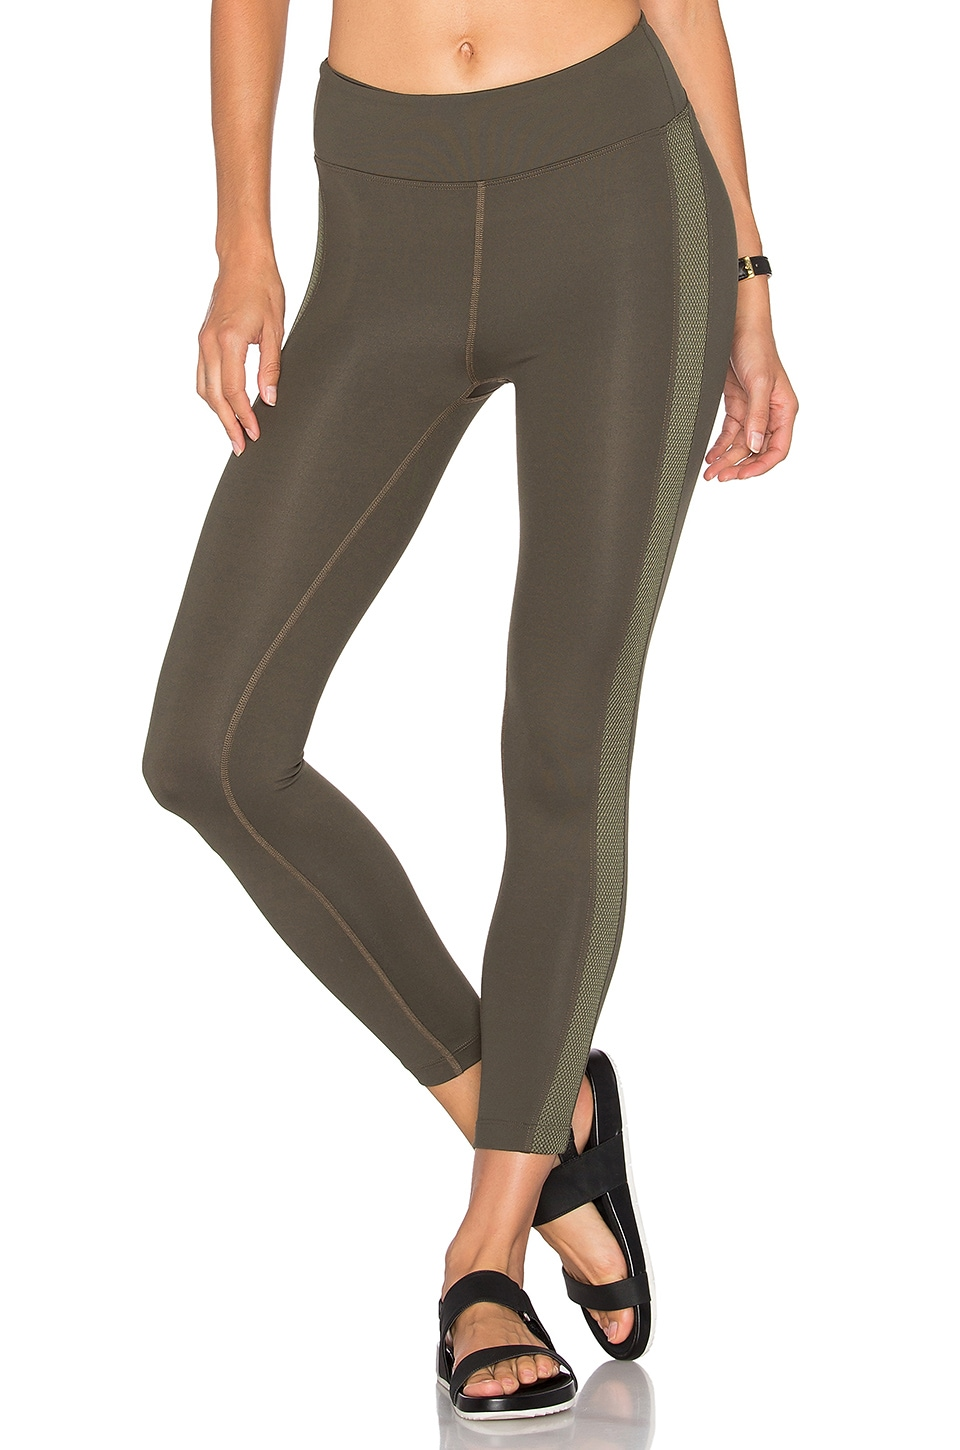 Dynamic Duo Hi Rise Legging by KORAL